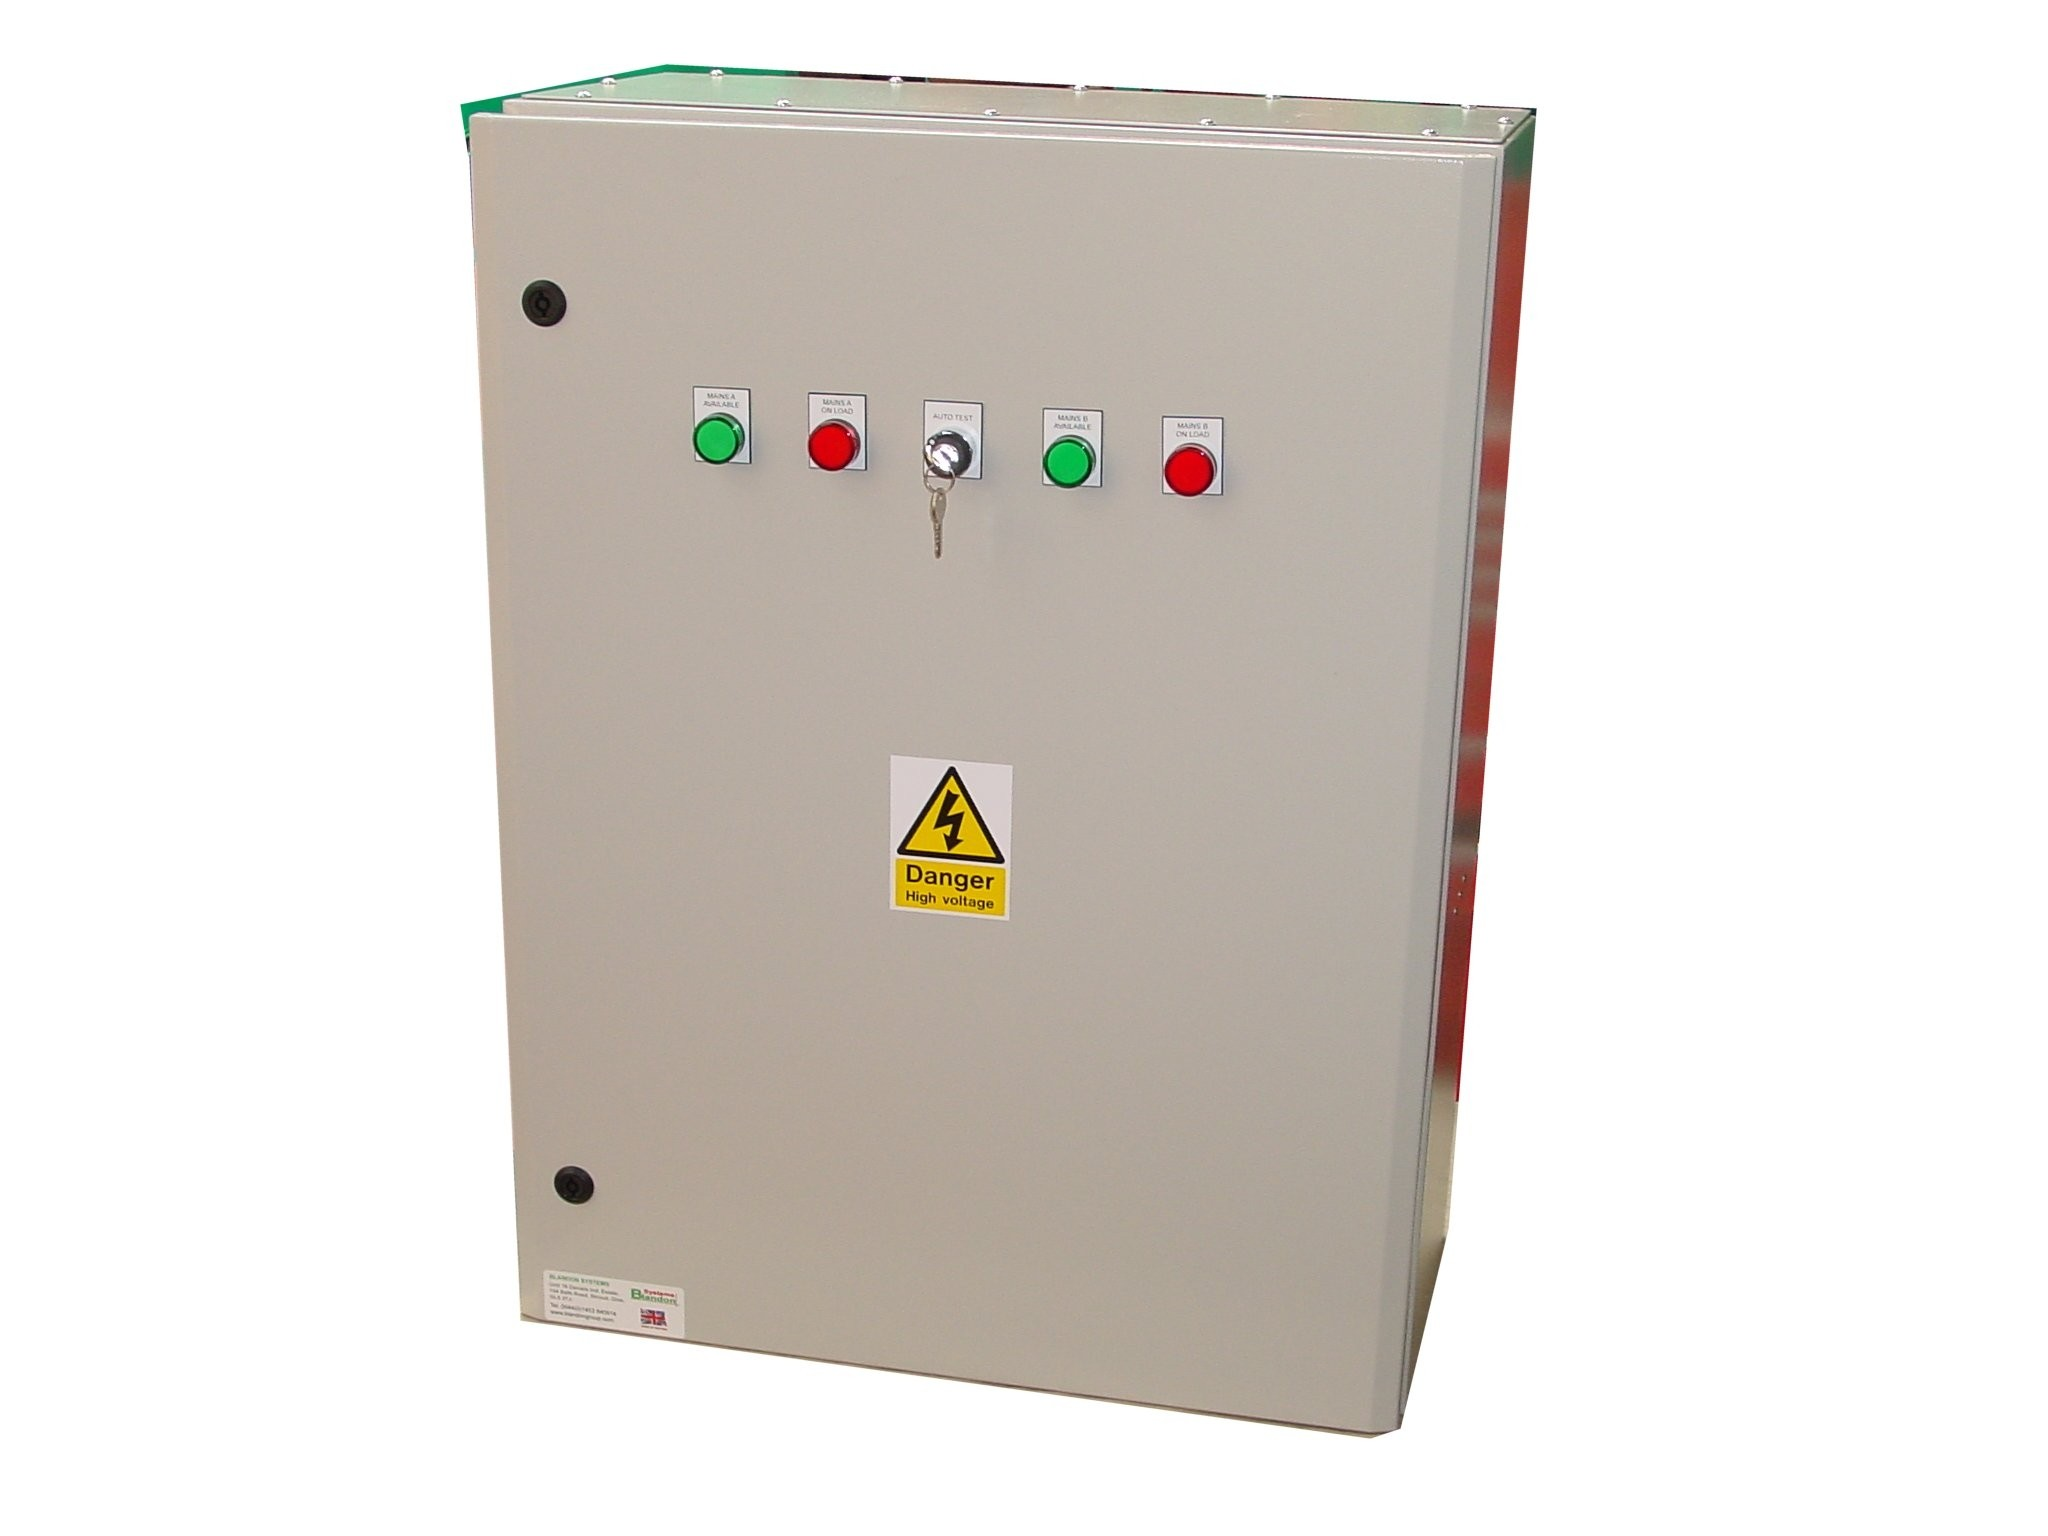 275A ATS 3 Phase Mains-Mains 400V, UVR Controlled, ABB Contactors